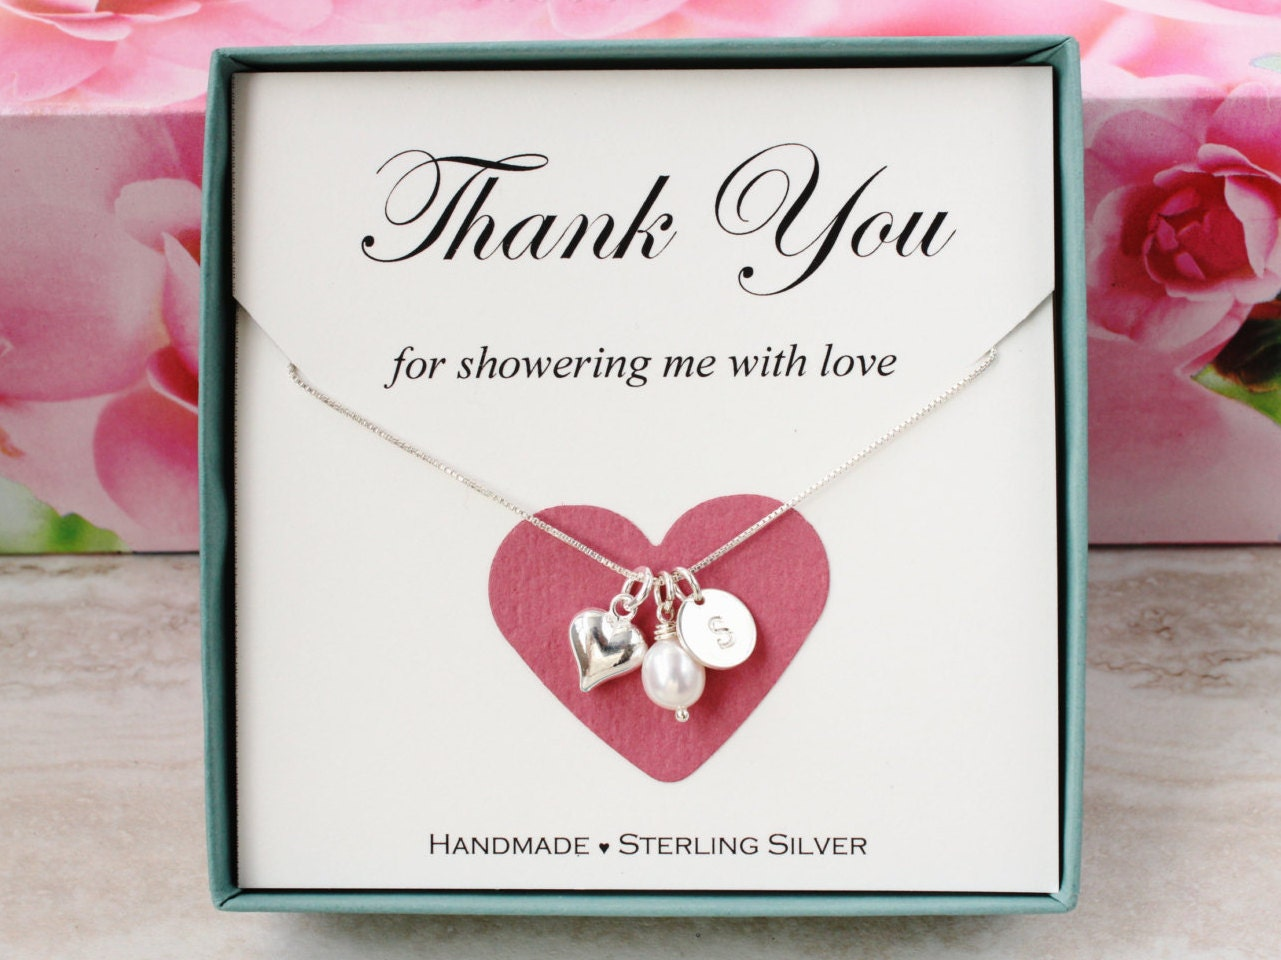 Good Hostess Gifts For Wedding Shower: Bridal Shower Hostess Gift For Baby Shower Hostess Thank You